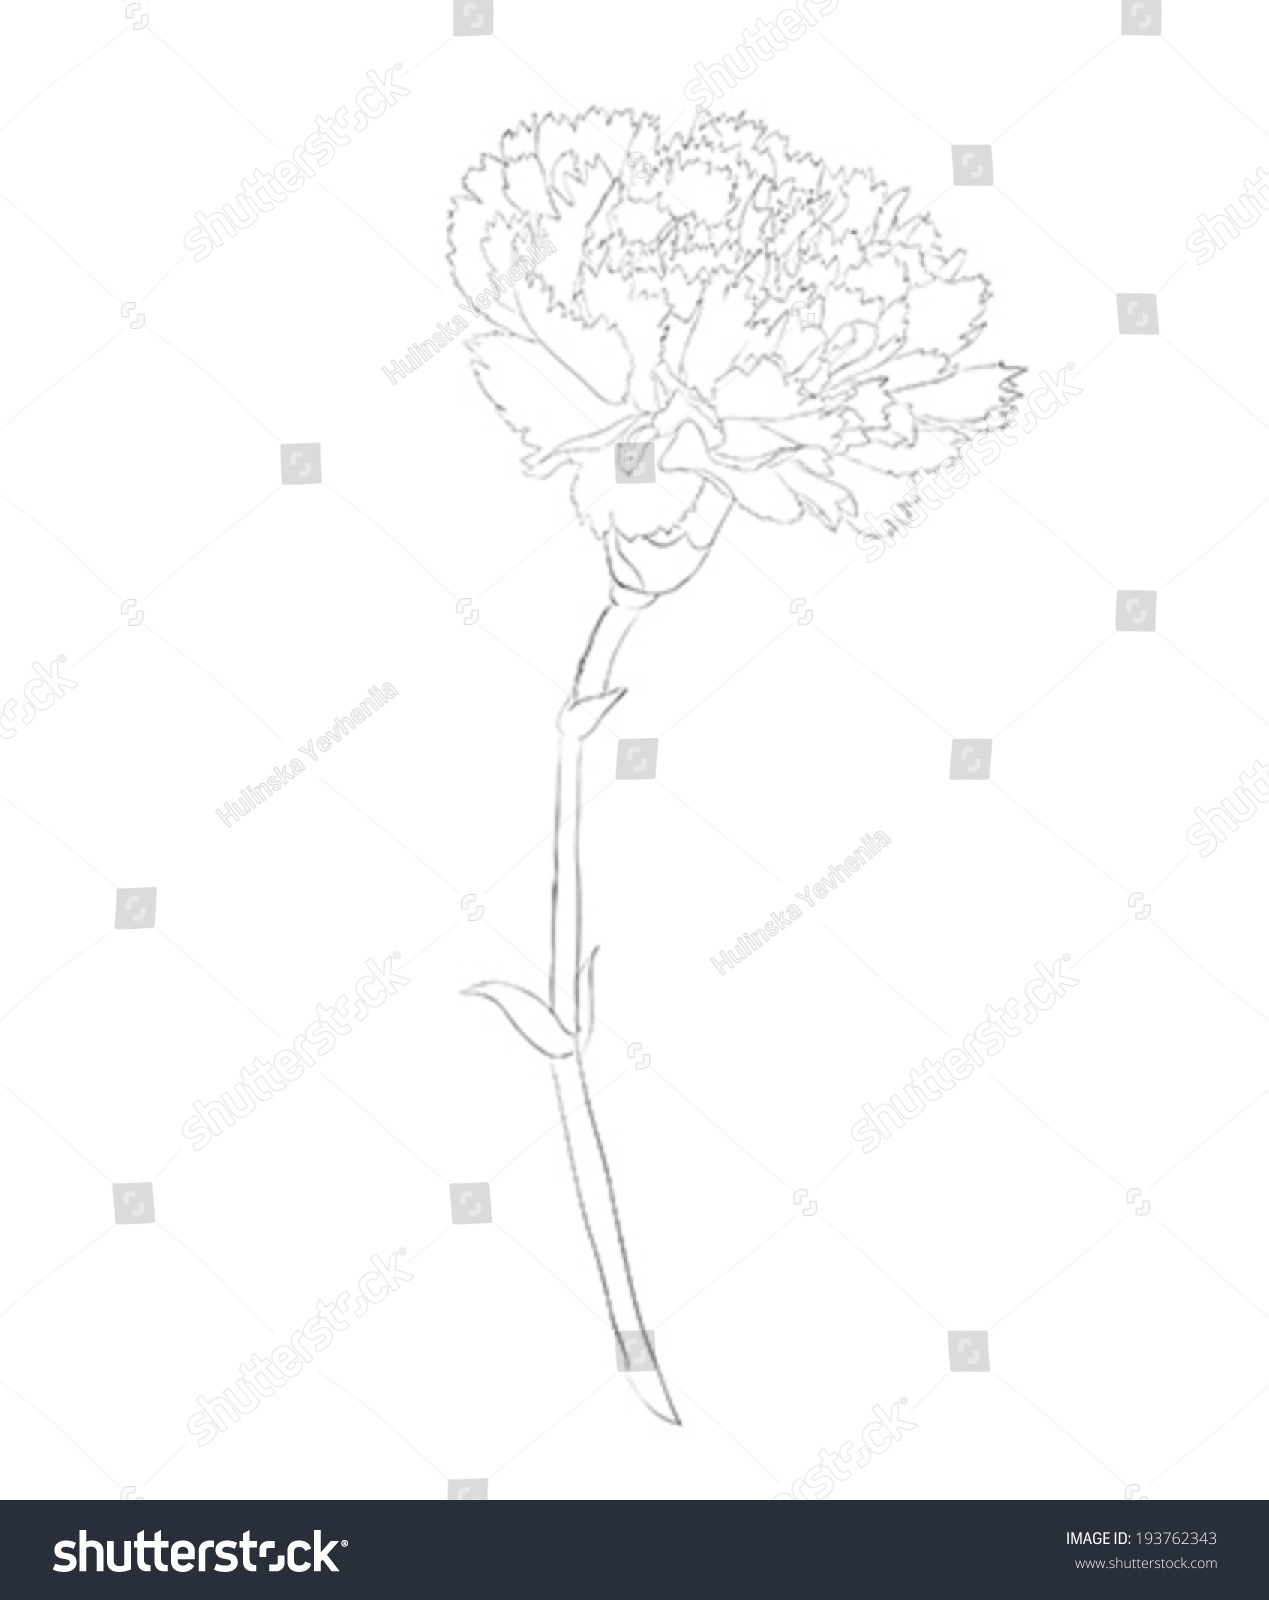 hight resolution of beautiful monochrome black and white carnation flower isolated on white background hand drawn contour